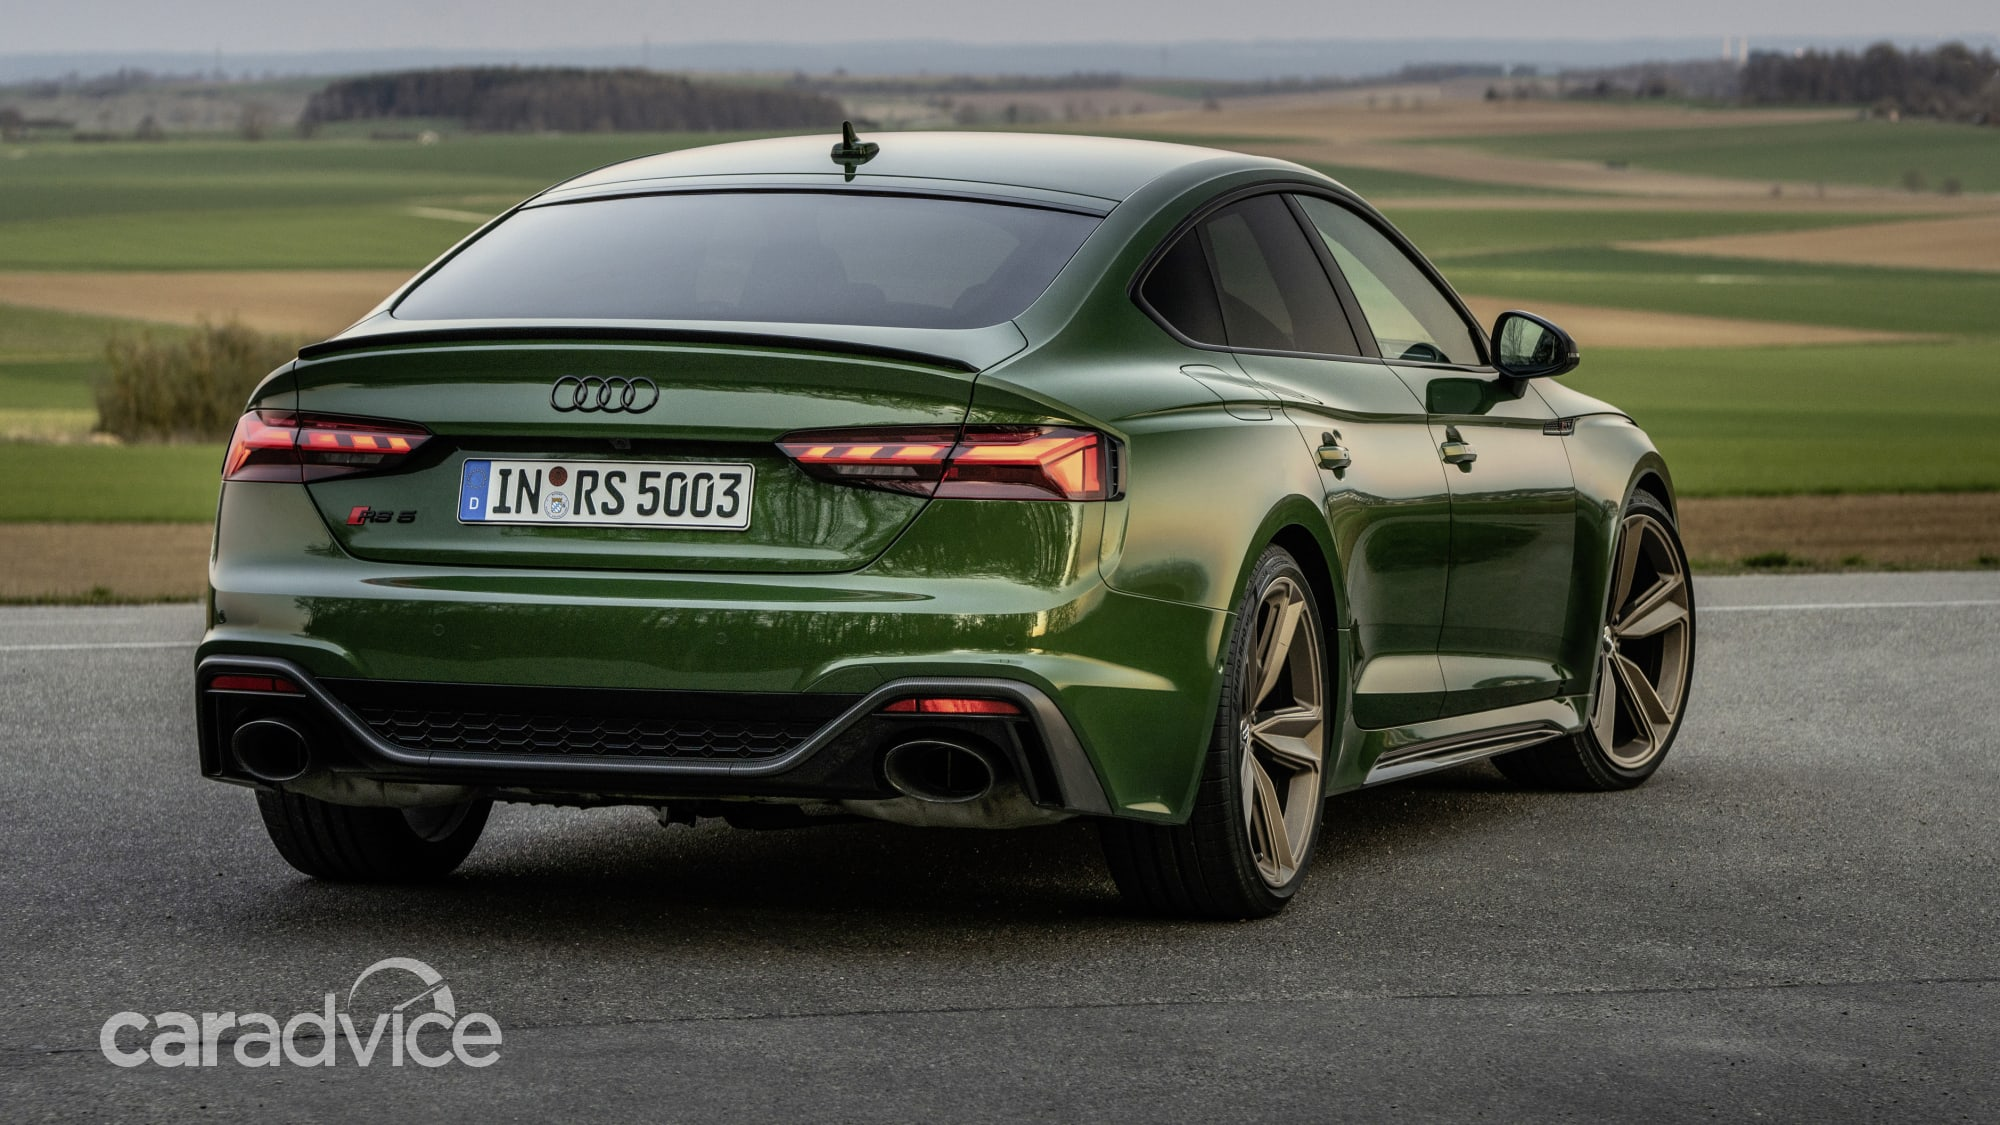 2021 audi rs5 coupe and sportback new images  caradvice